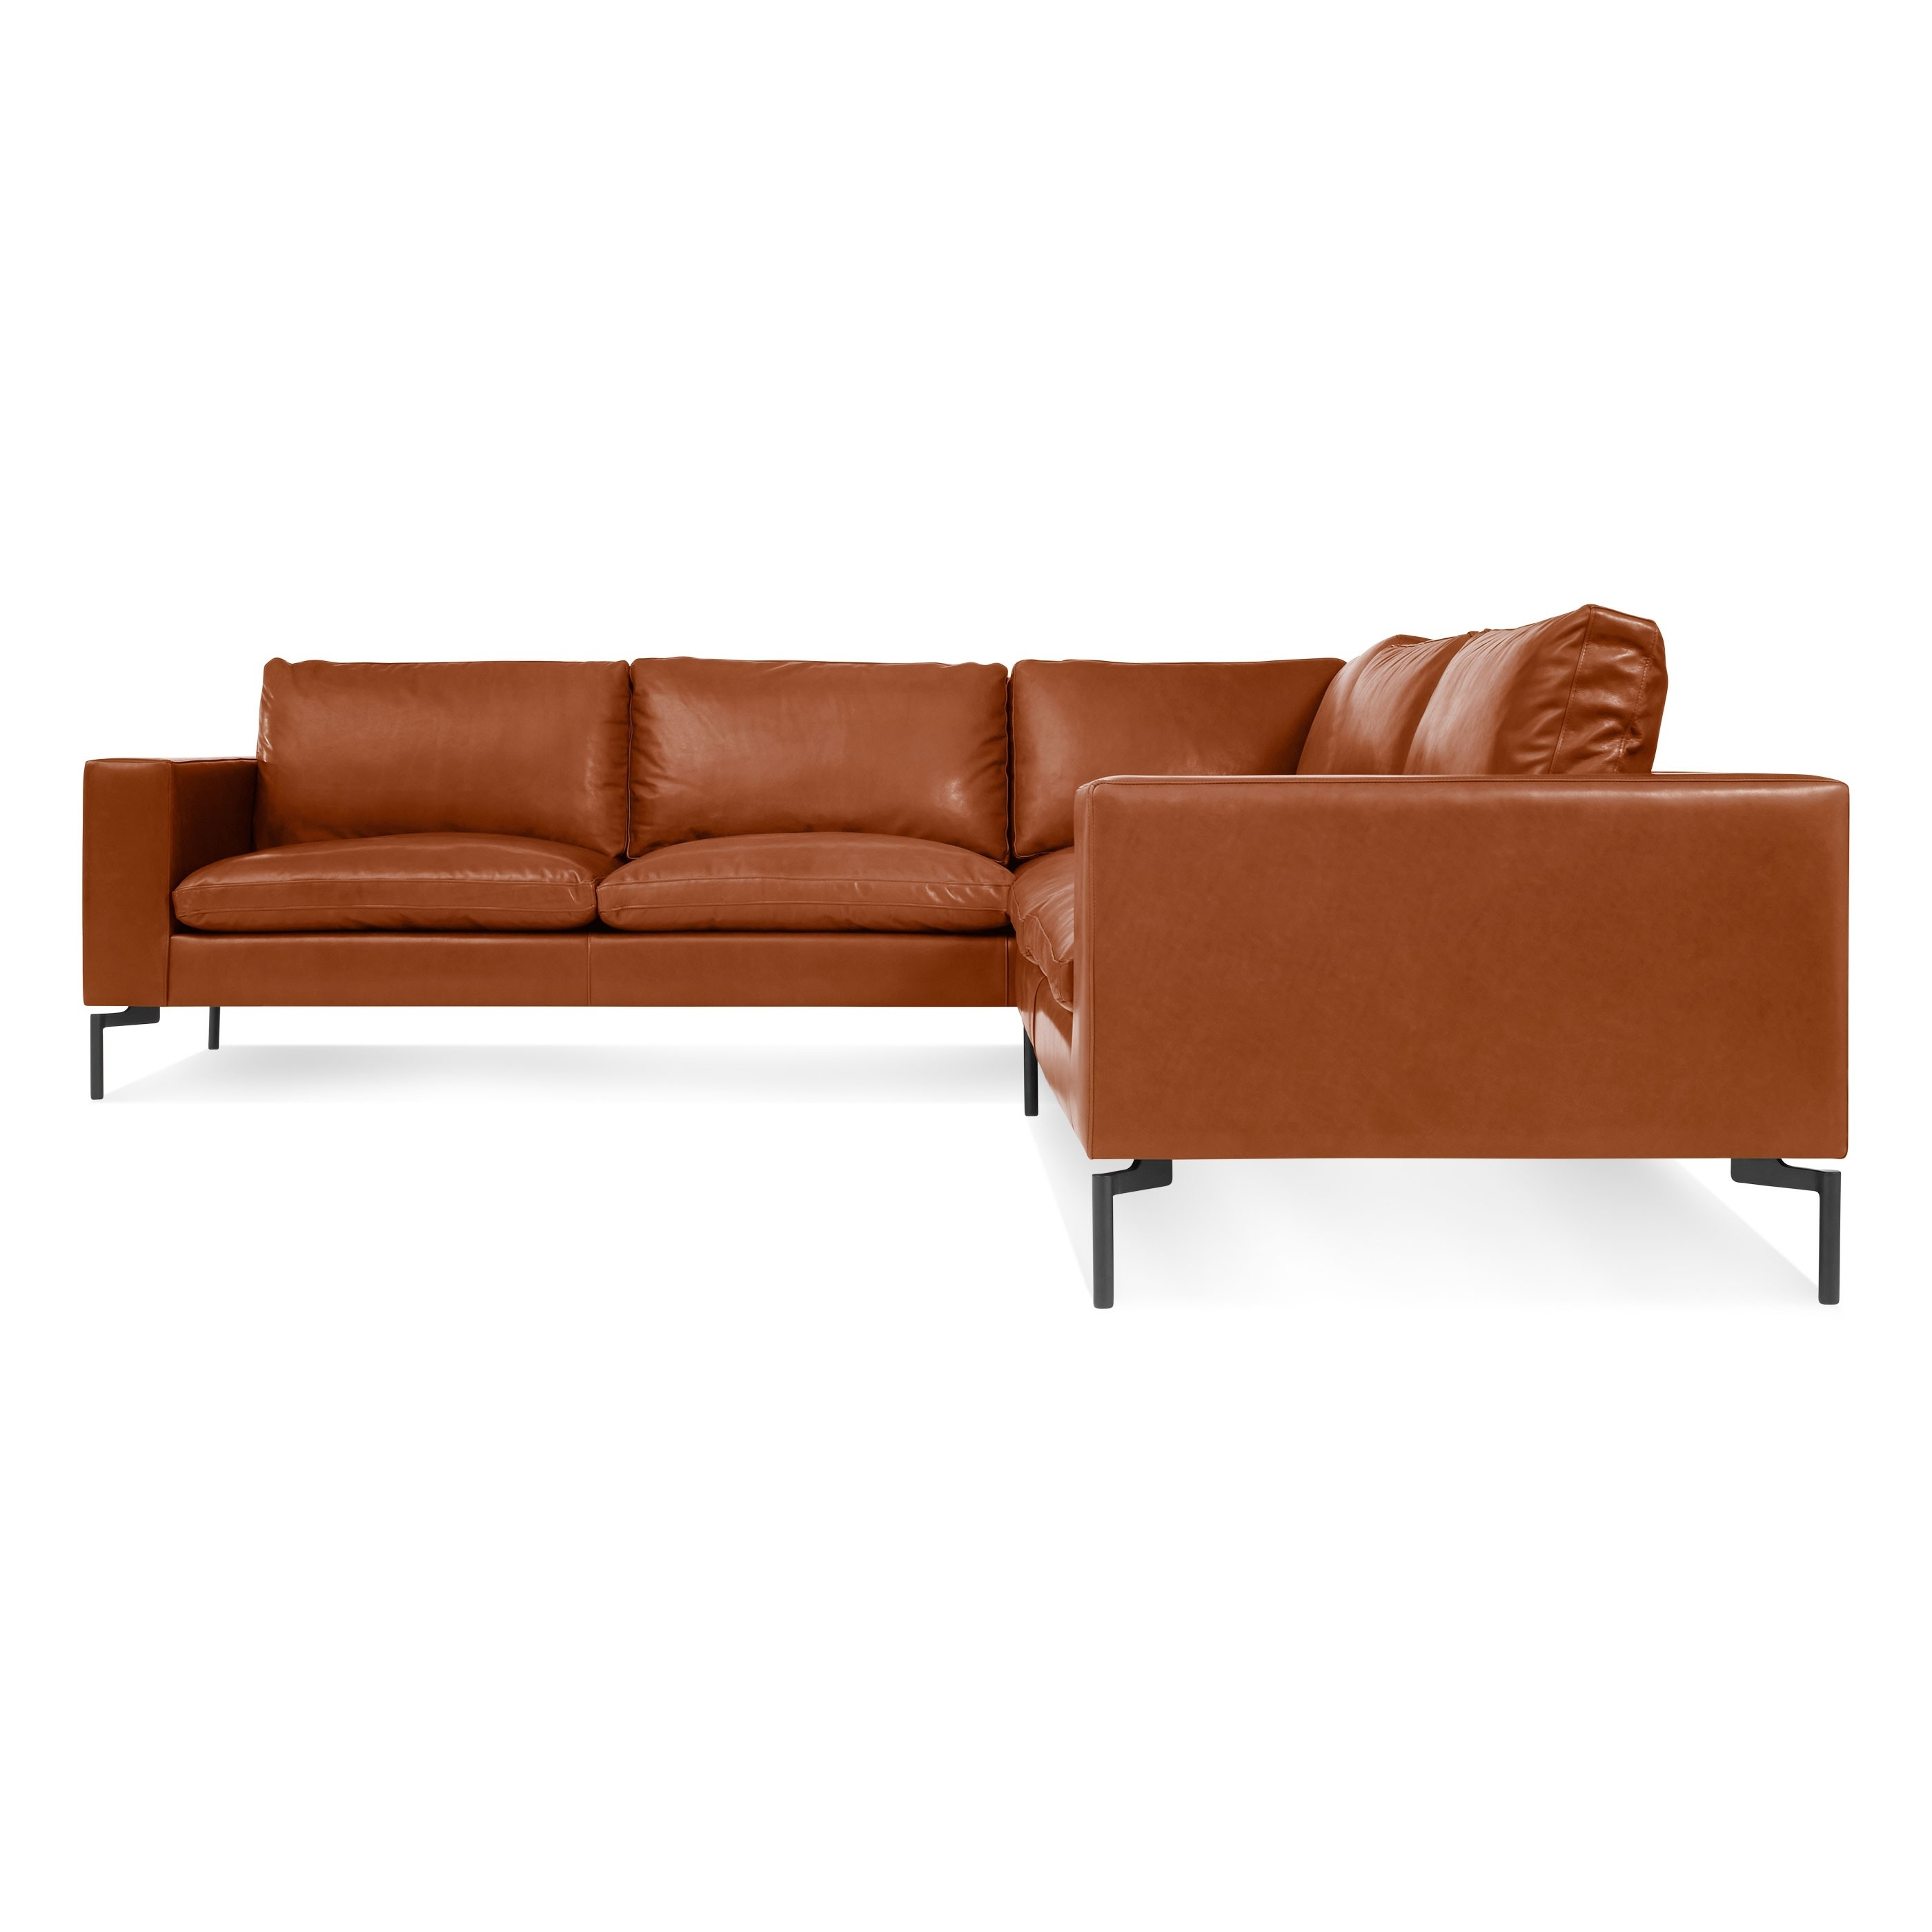 Popular Sectional Sofas At Bc Canada Regarding New Standard Small Leather Sectional – Modern Leather Sofa (View 7 of 15)